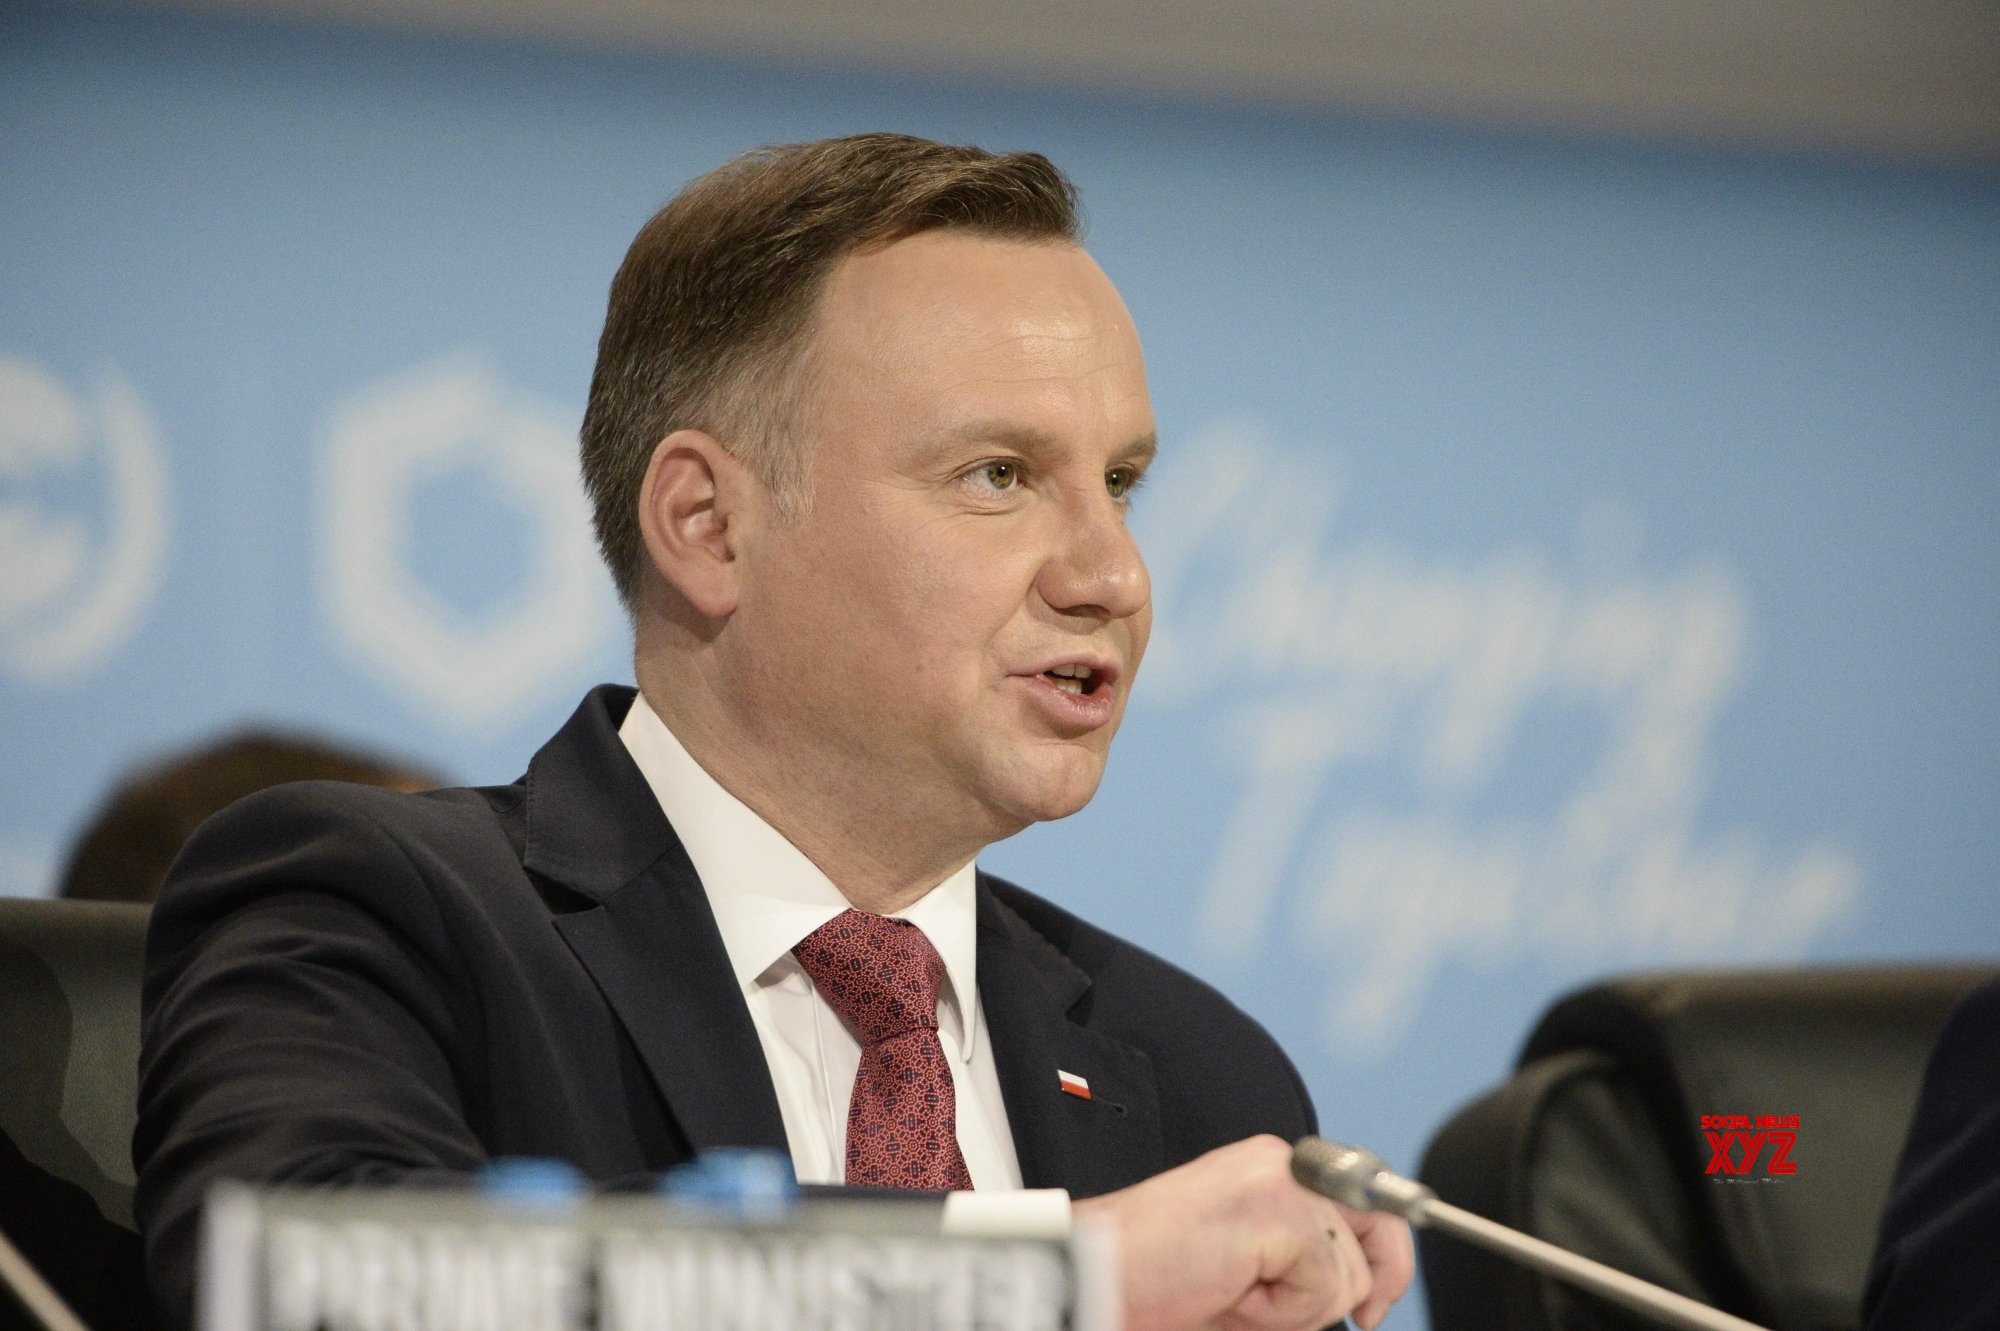 Poland seeks to send a climate-change message to the world